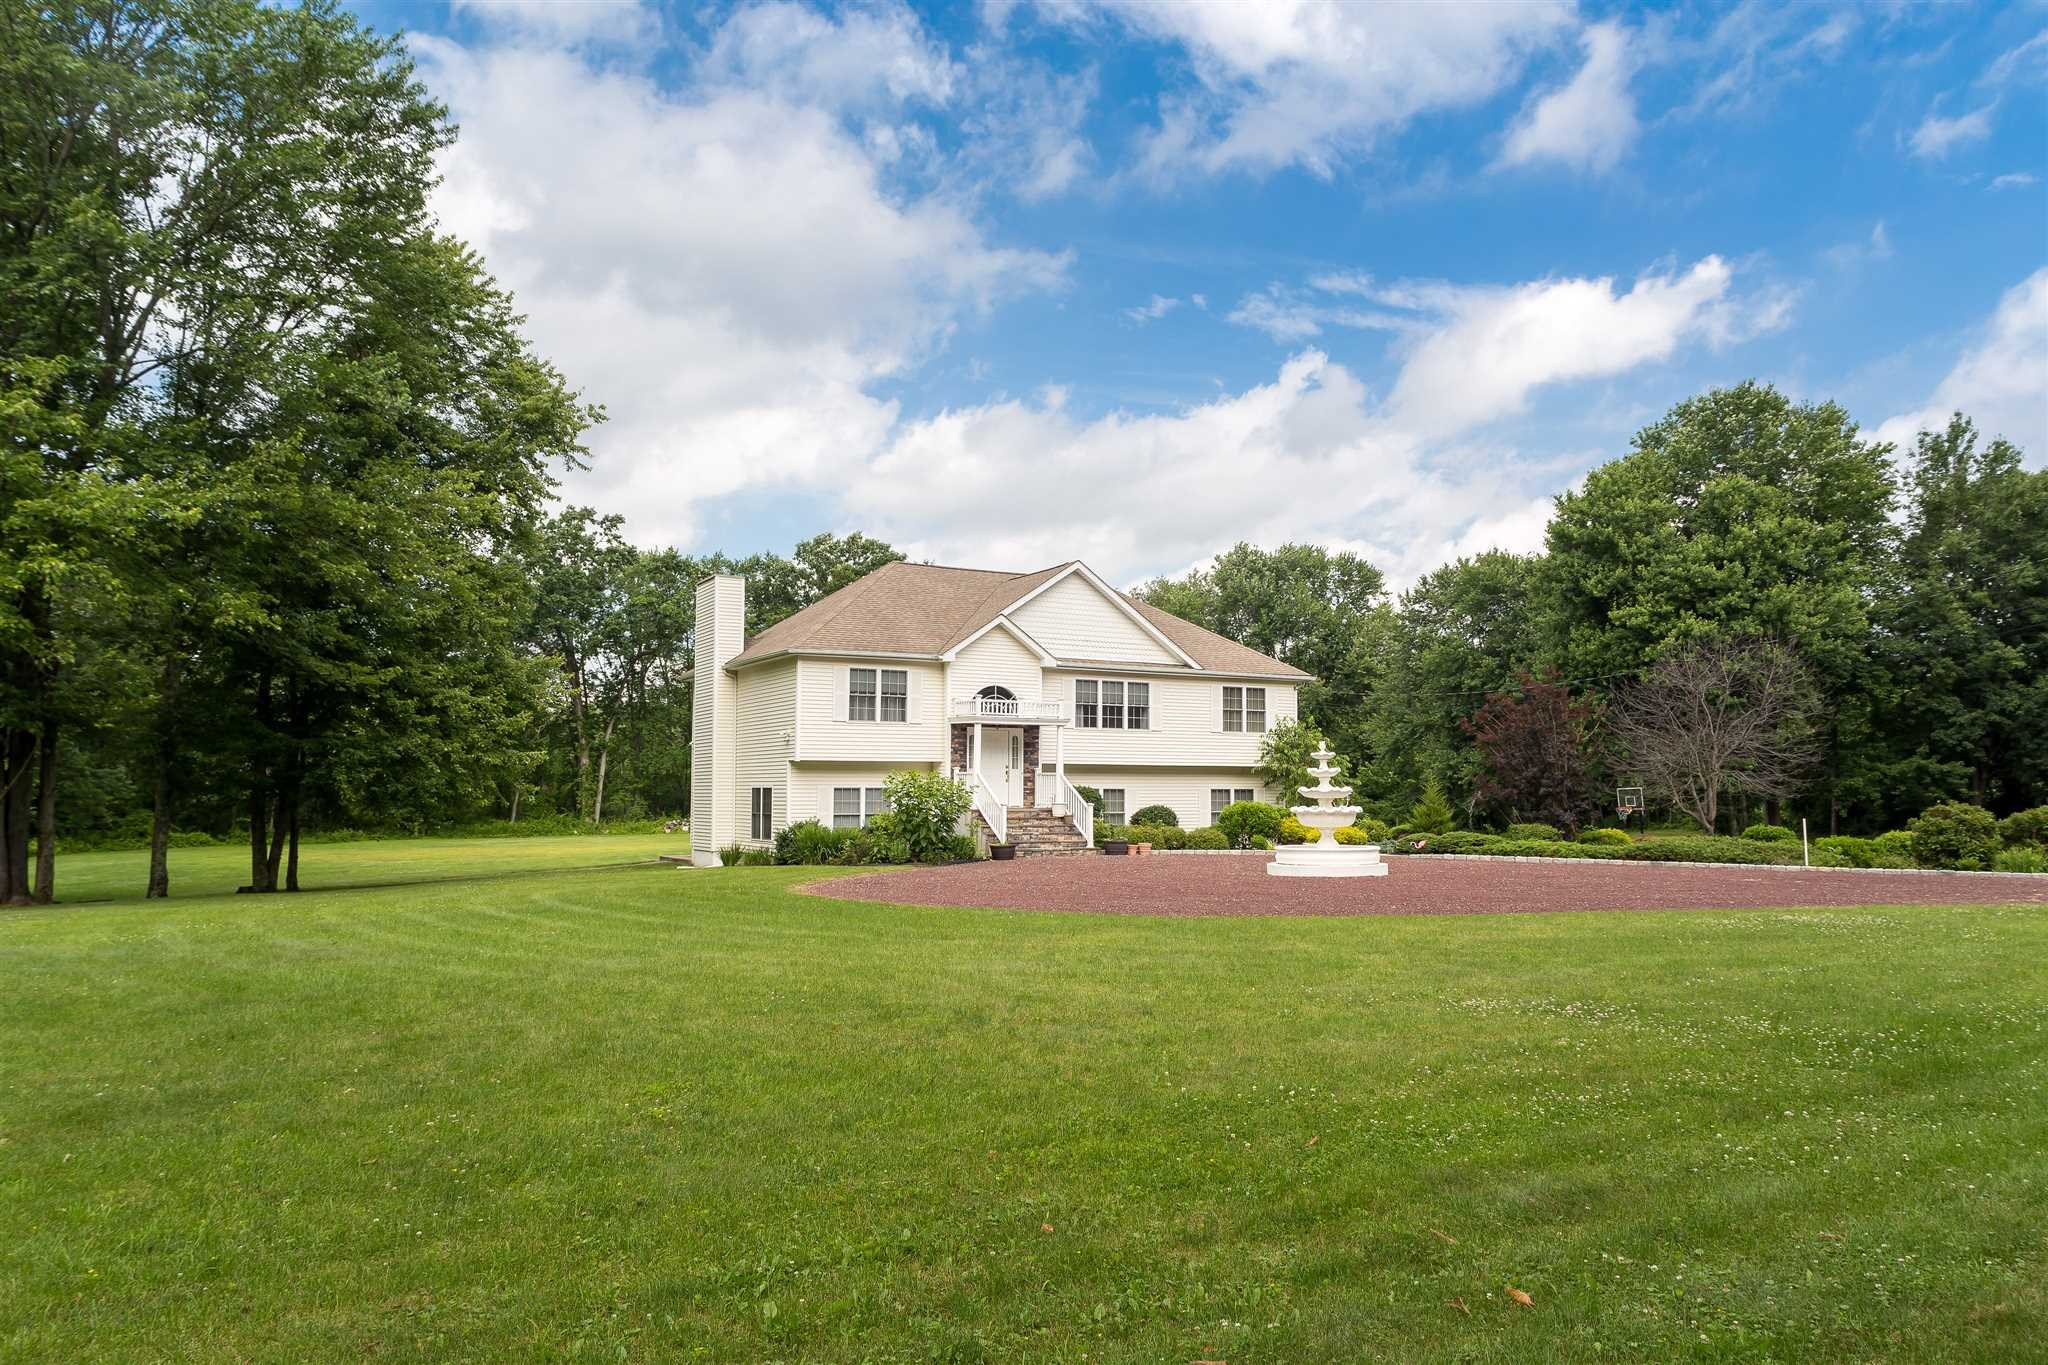 Single Family Home for Sale at 255 ROUTE 216 255 ROUTE 216 East Fishkill, New York 12582 United States